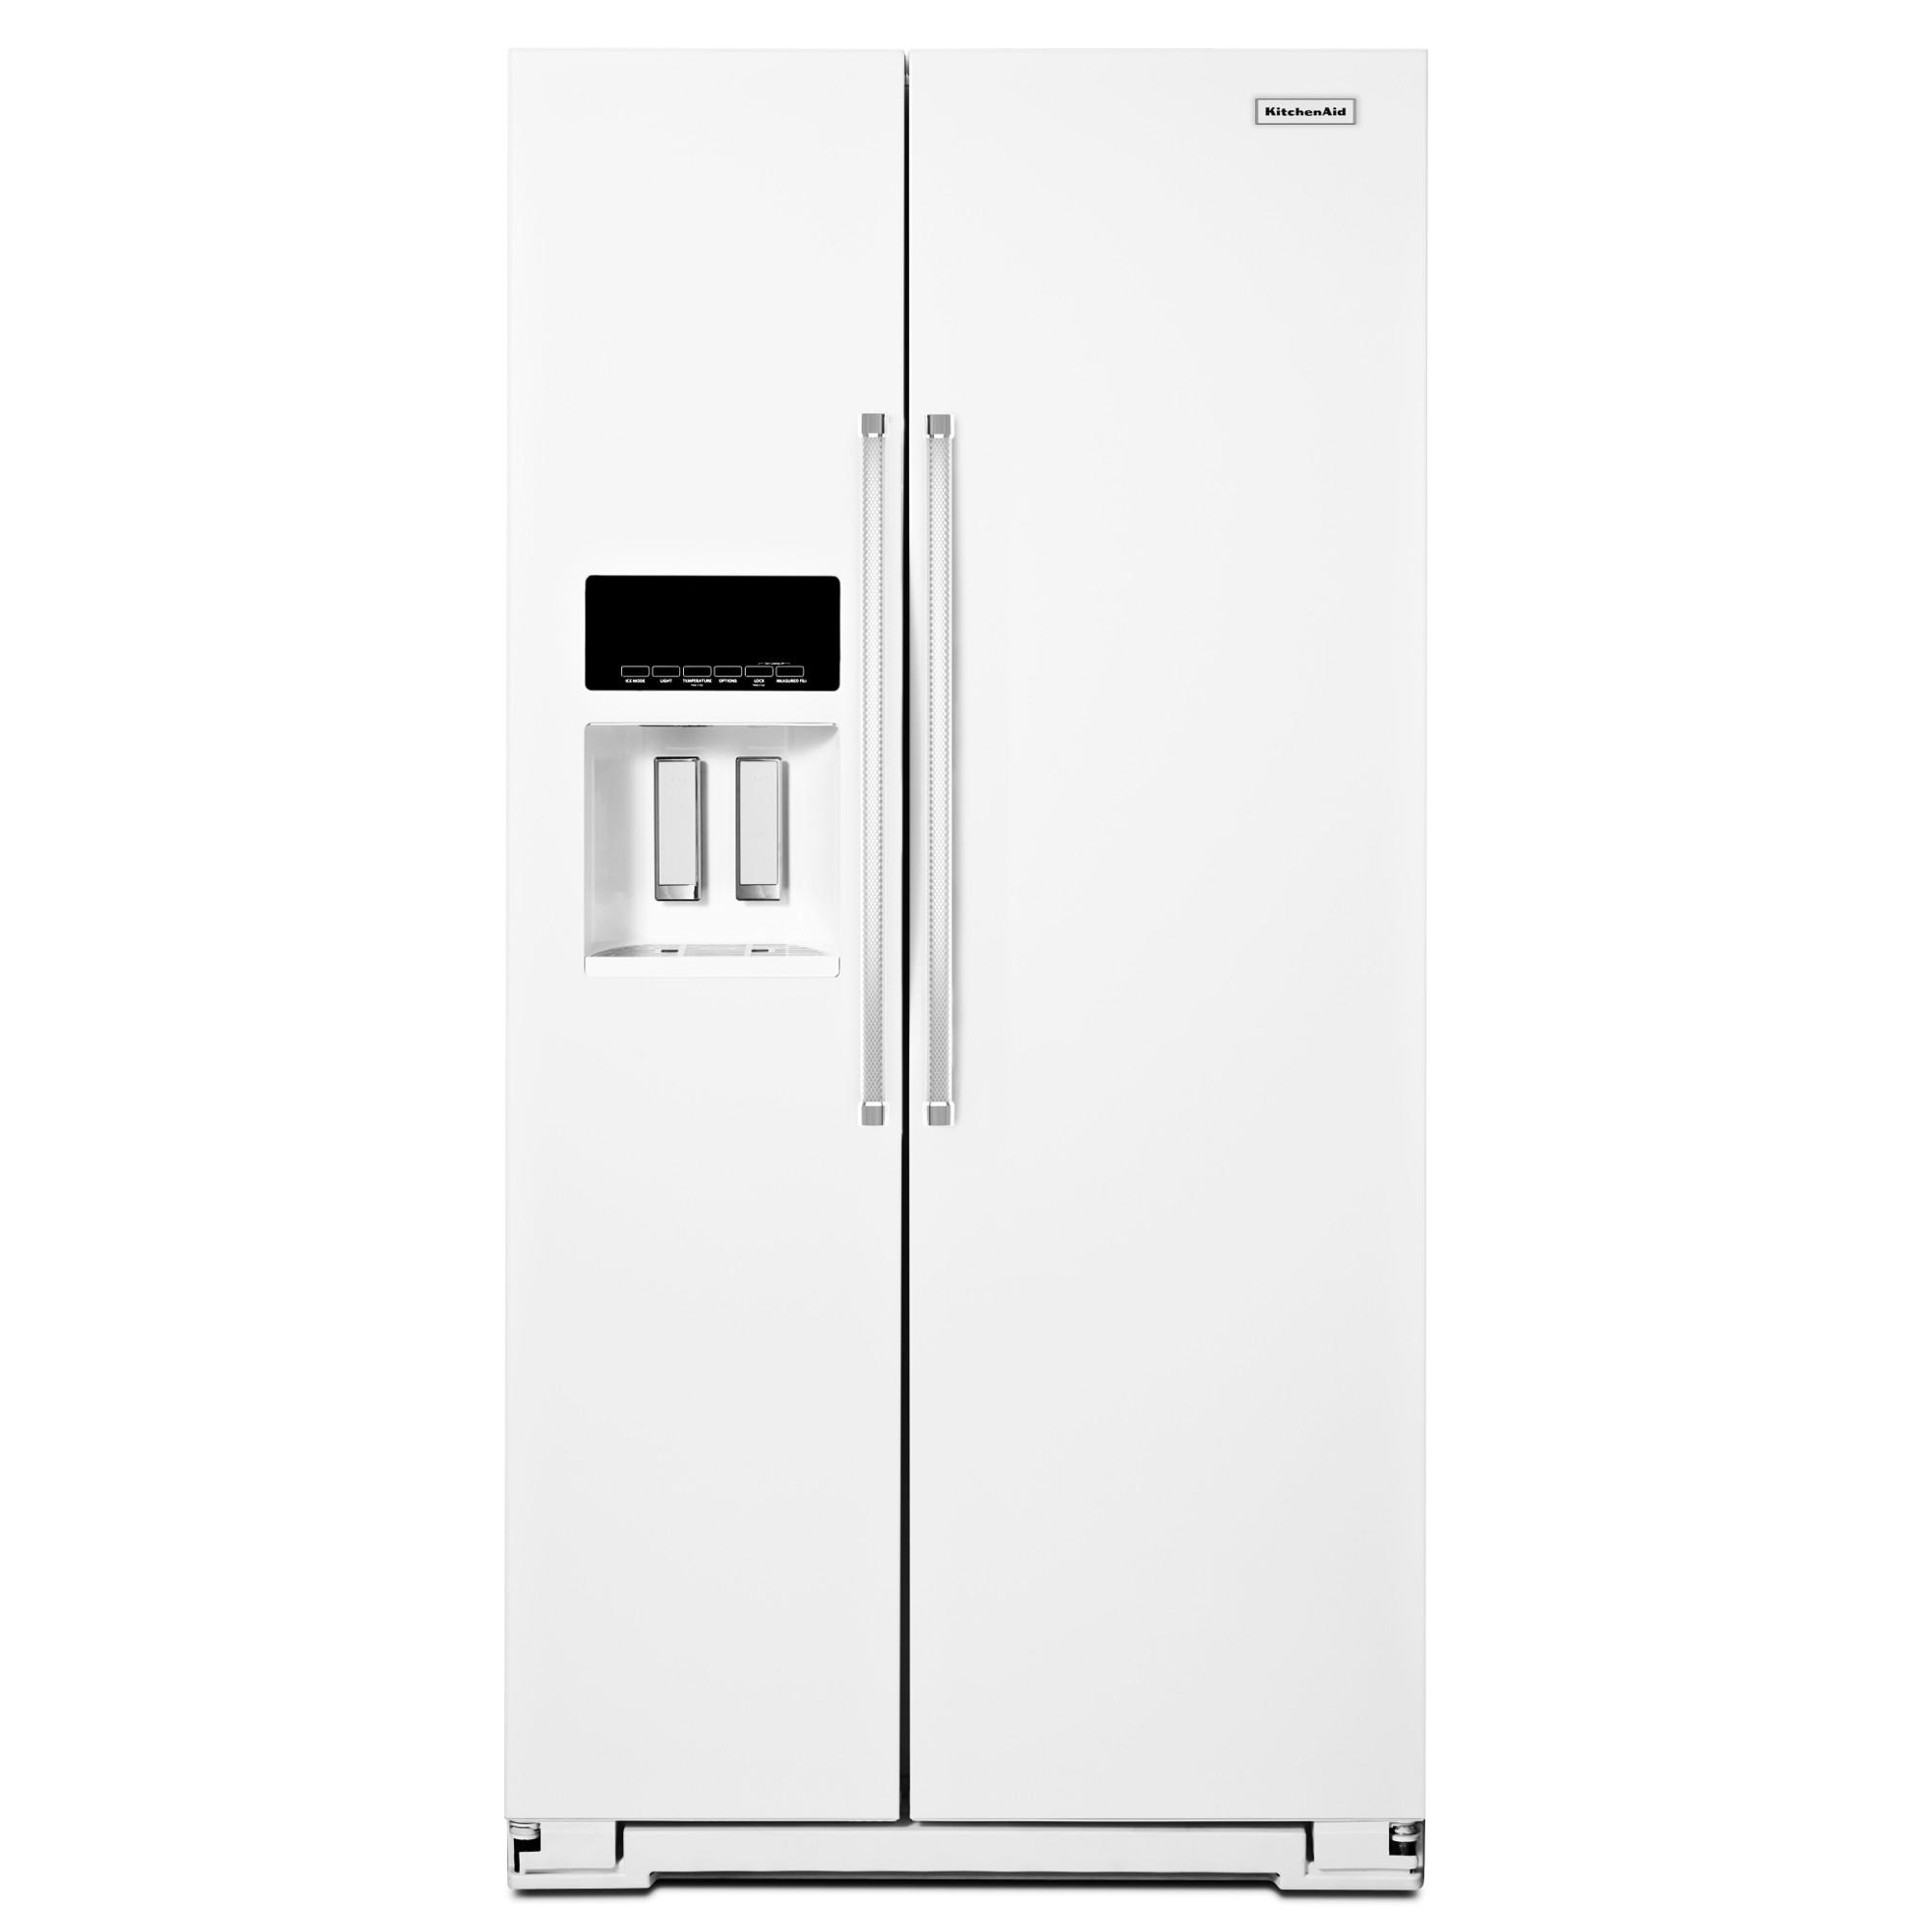 KitchenAid KRSF505EWH 25.6 cu. ft. Side-by-Side Refrigerator - White